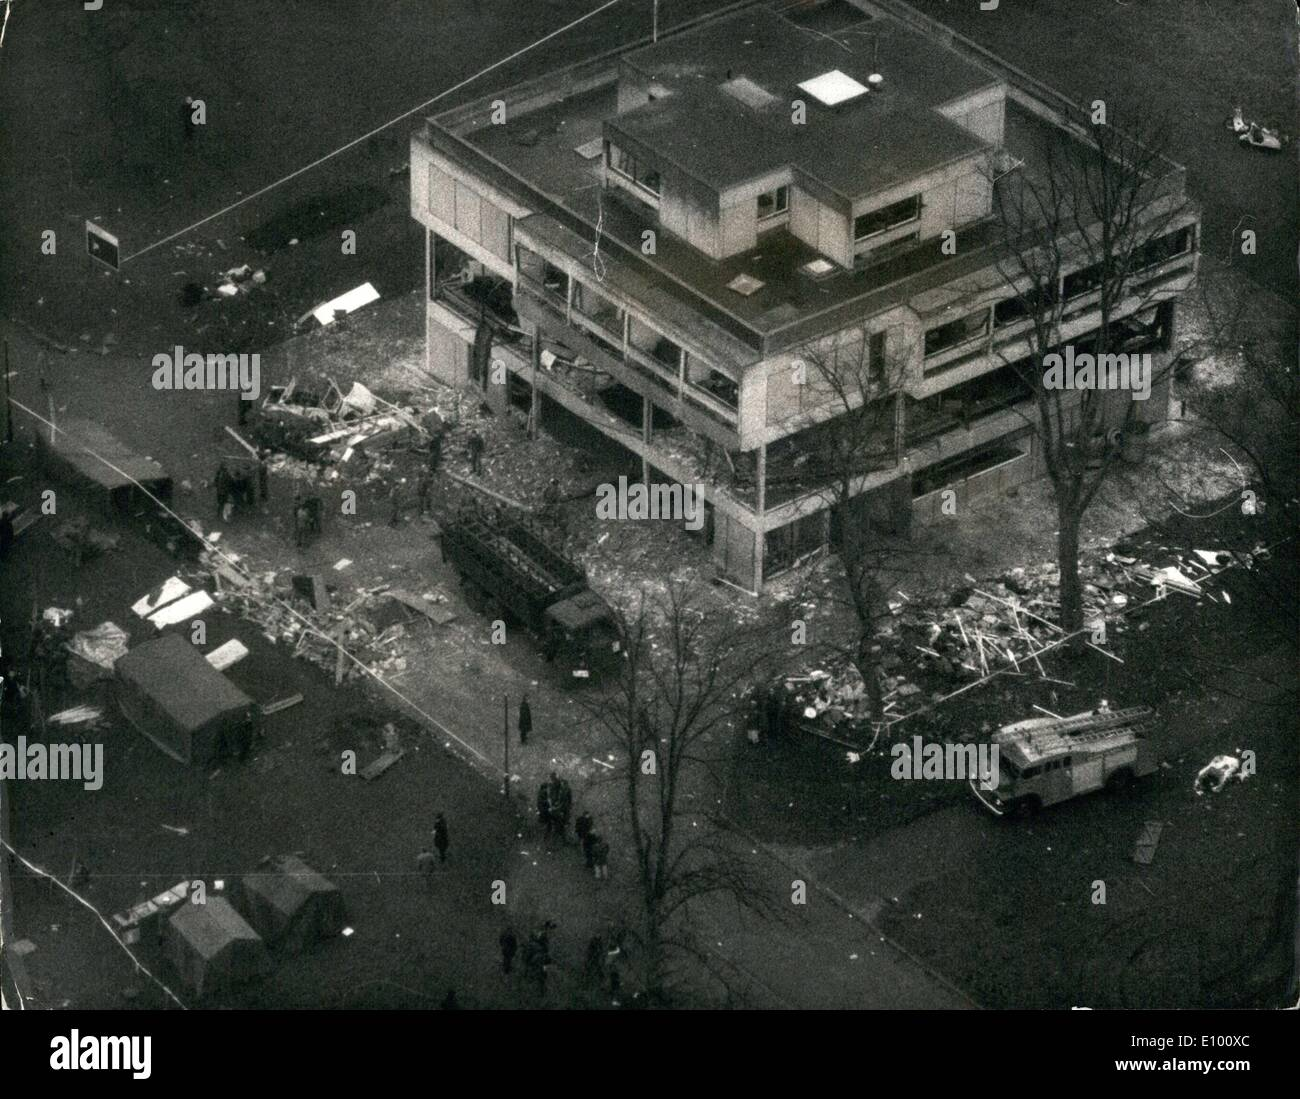 Feb. 02, 1972 - Seven killed when Ira Bomb Wrecks Officers Mess at Aldershot.: An IRA bomb wrecked the officers's mess of the 16th. Parachute Regiment at Aldershot yesterday killing five women domestic workers, a civilian man and a Roman Catholic padre. Sixteen others, including several Army and RAF officers were injured. The official IRA in Dubblin immediately claimed responsibility for the bombing and said it was in retaliation for Londonderry's 'Bloody Sunday' battle involving the Parachute Regiment when 13 civilians were shot dead on Jan, 30 - Stock Image